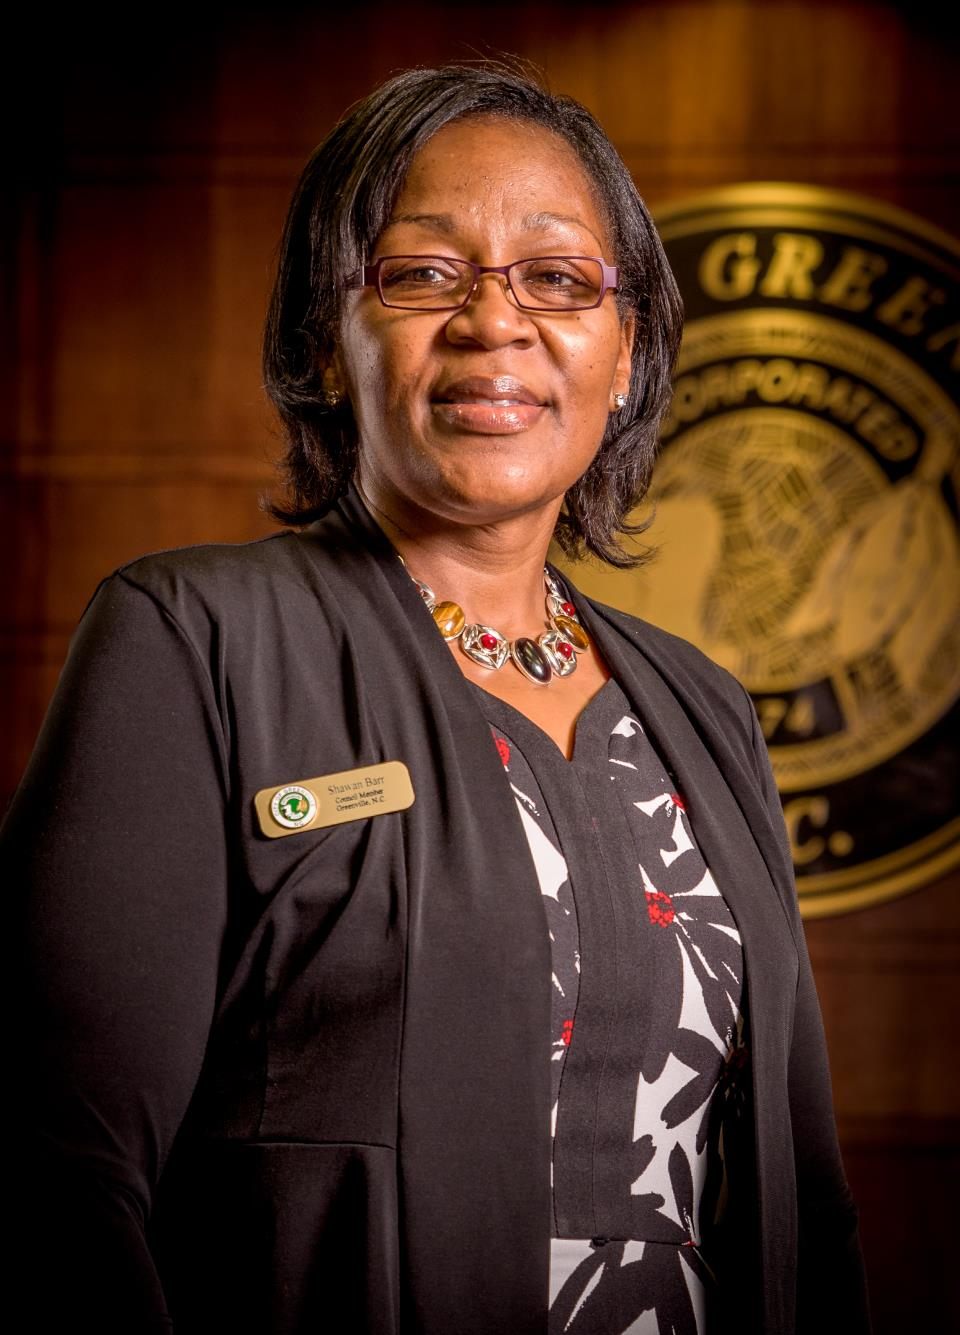 City manager government card - Council Member Shawan Barr Po Box 7207 200 West Fifth Street Greenville Nc 27835 Telephone 252 329 4422 Smbarr Greenvillenc Gov